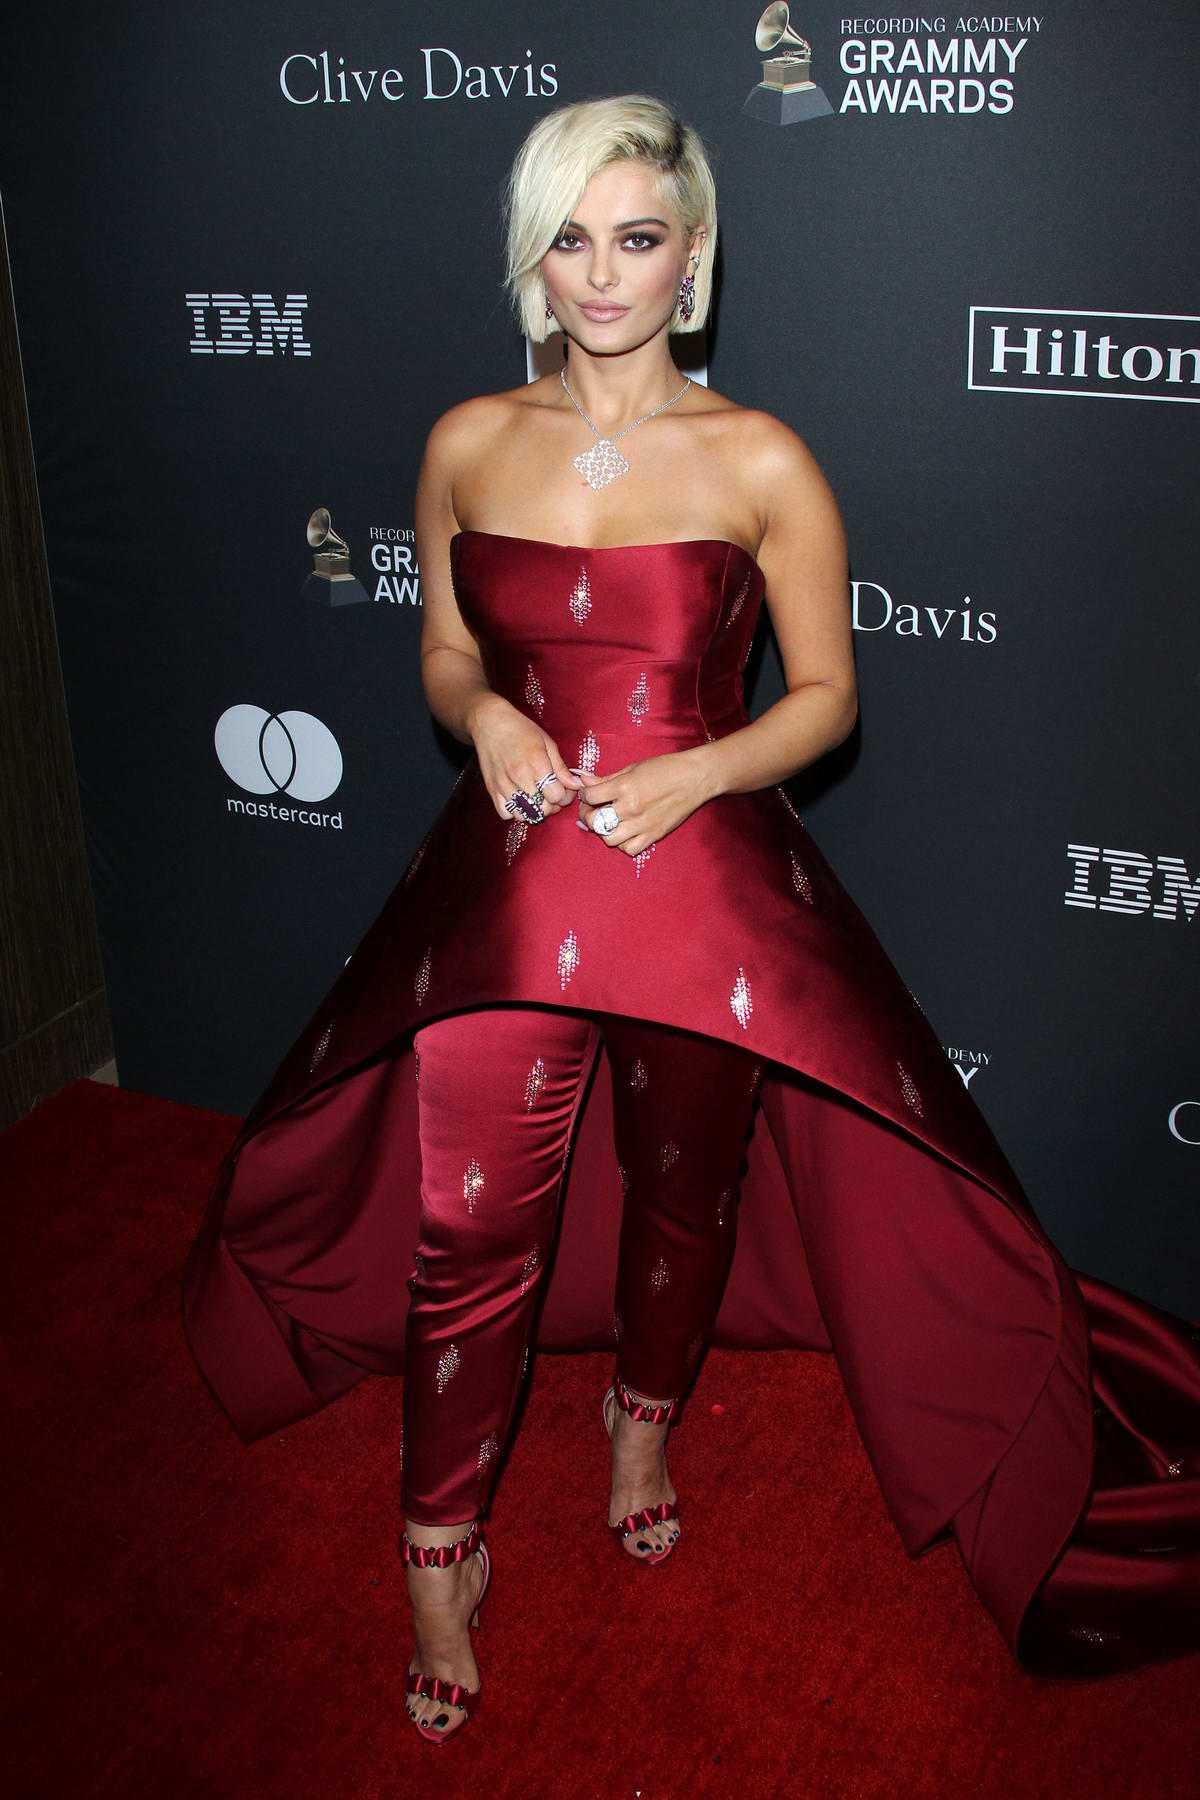 Bebe Rexha attends the Clive Davis Pre-Grammy Gala and Salute to Industry Icons held at The Beverly Hilton in Los Angeles